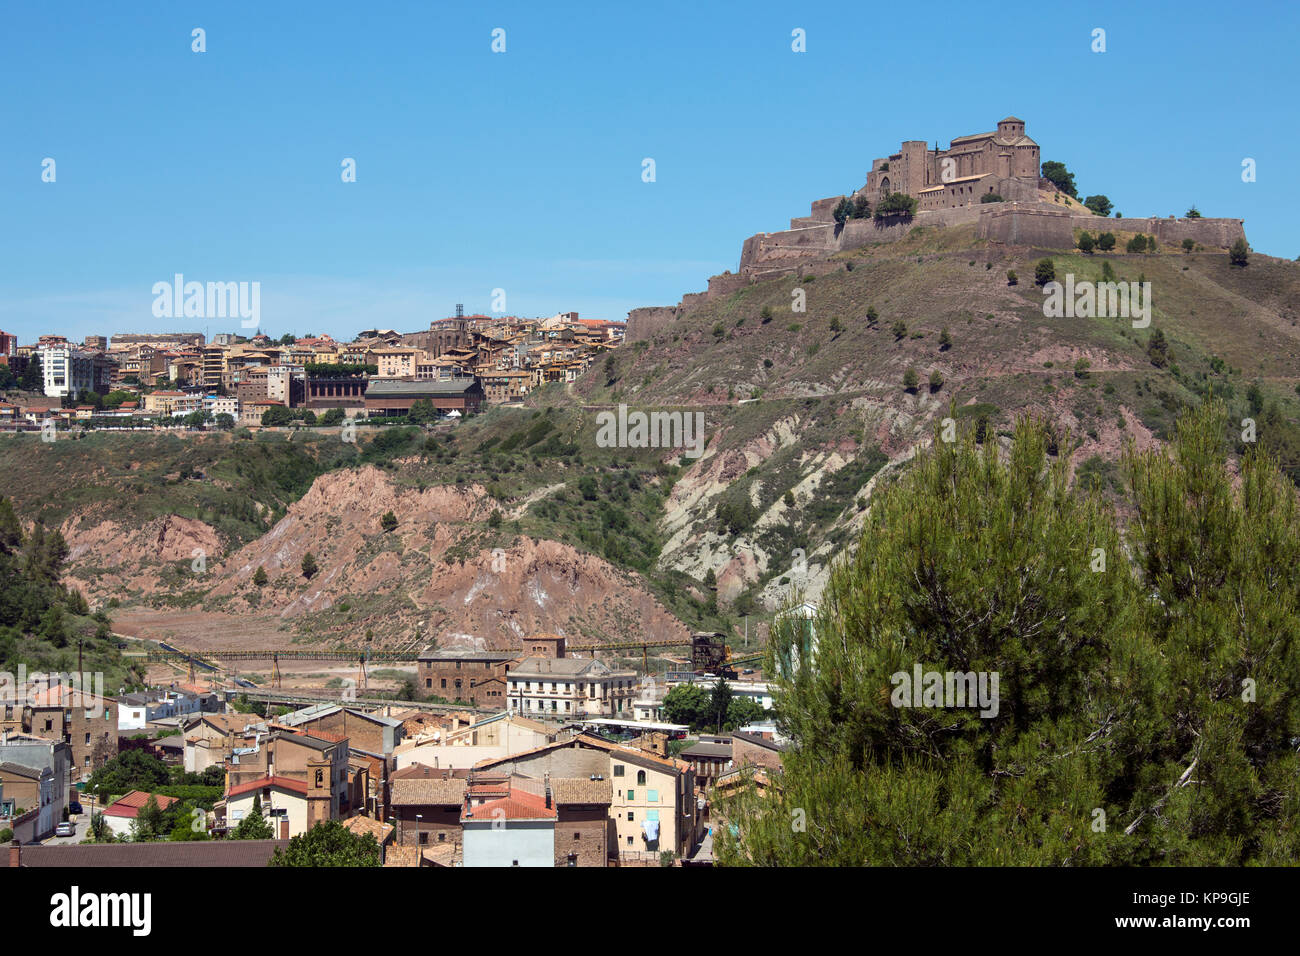 Cardona Castle and Abbey high above the industrial town of Cardona in the Catalonia region of Spain. - Stock Image